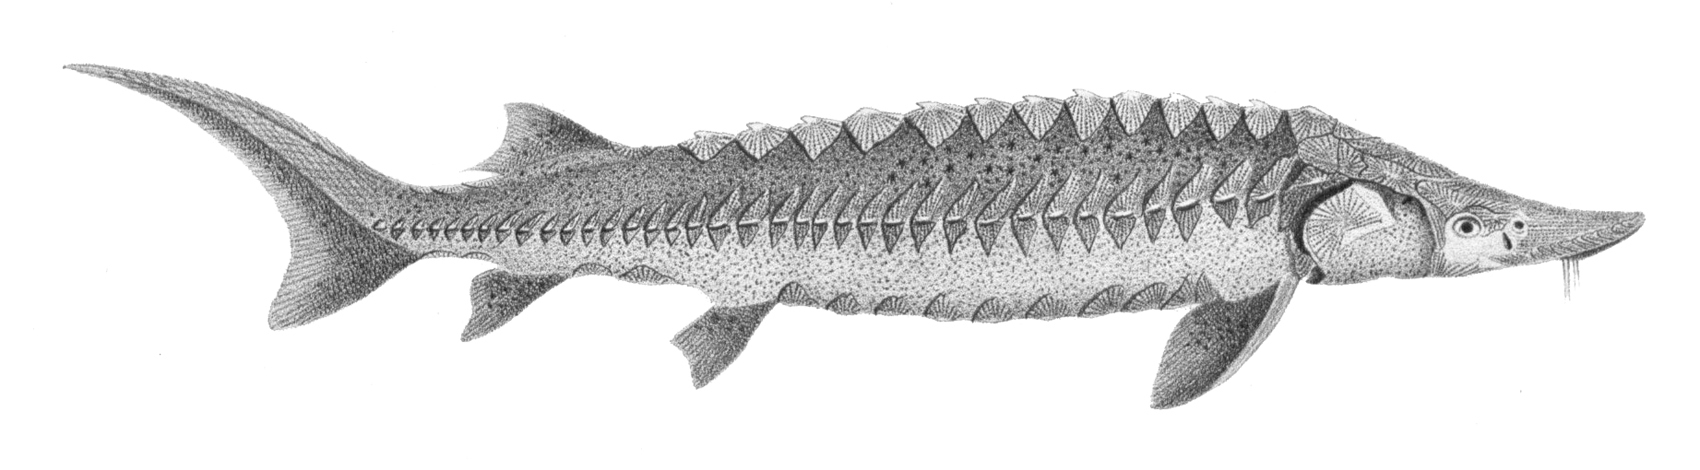 Image of Lake Sturgeon